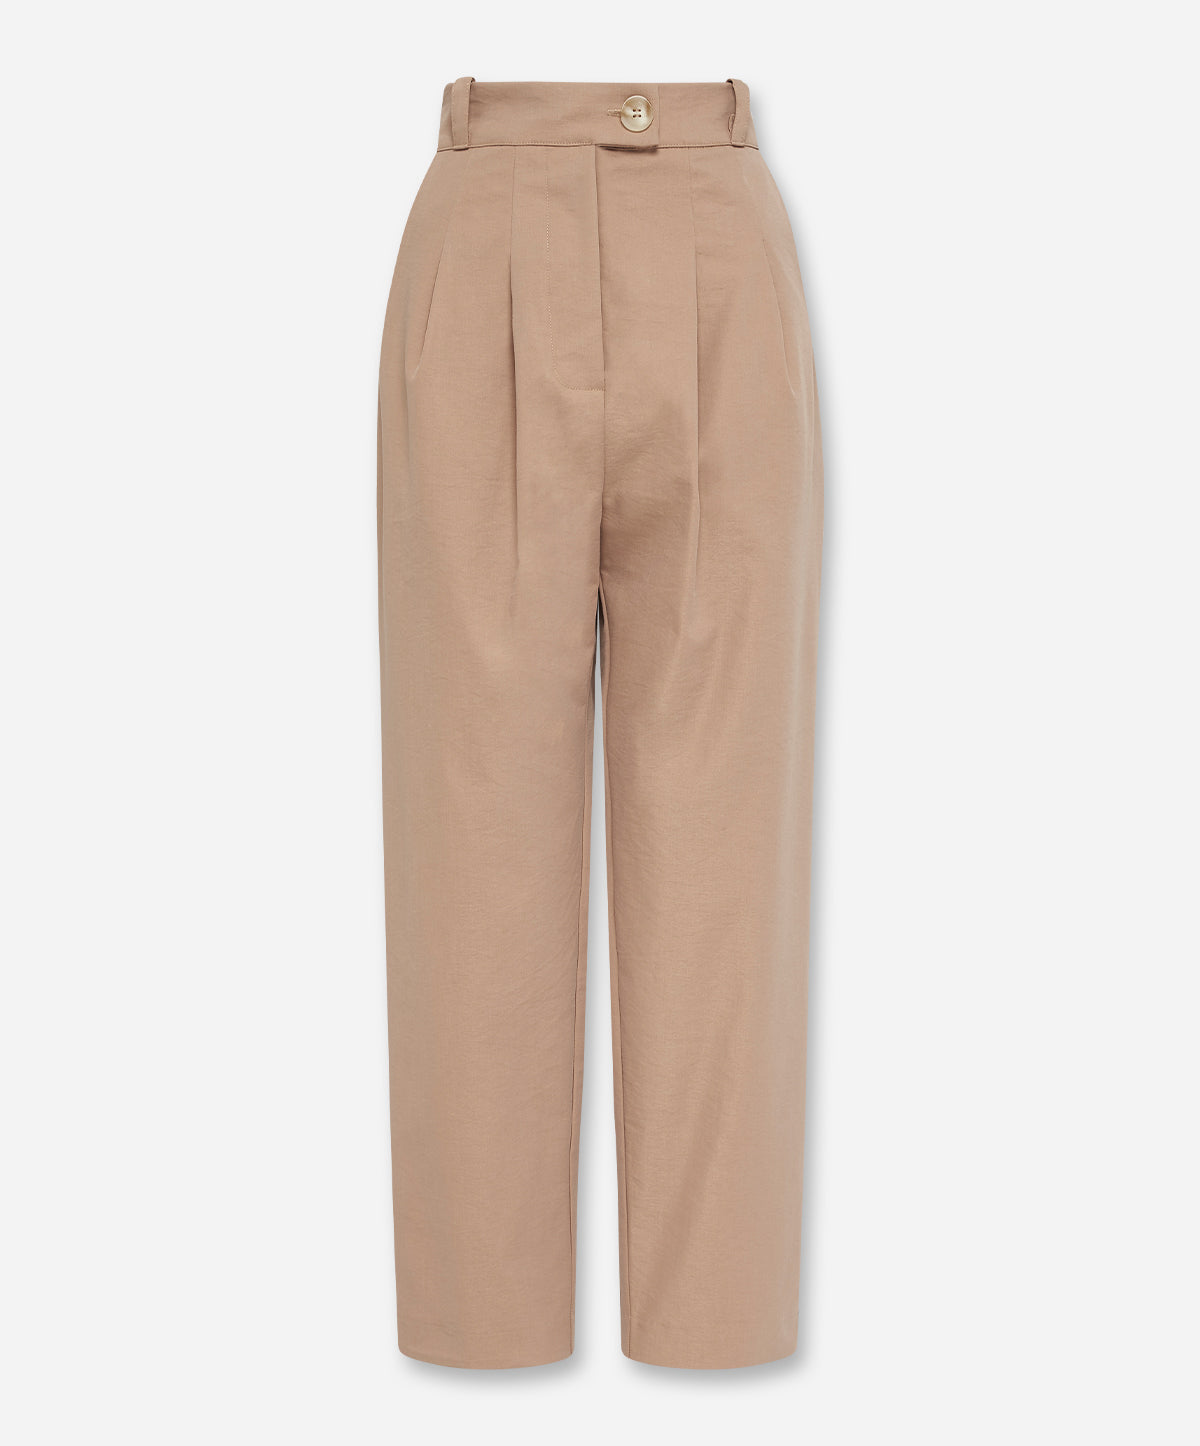 Syssla Pant